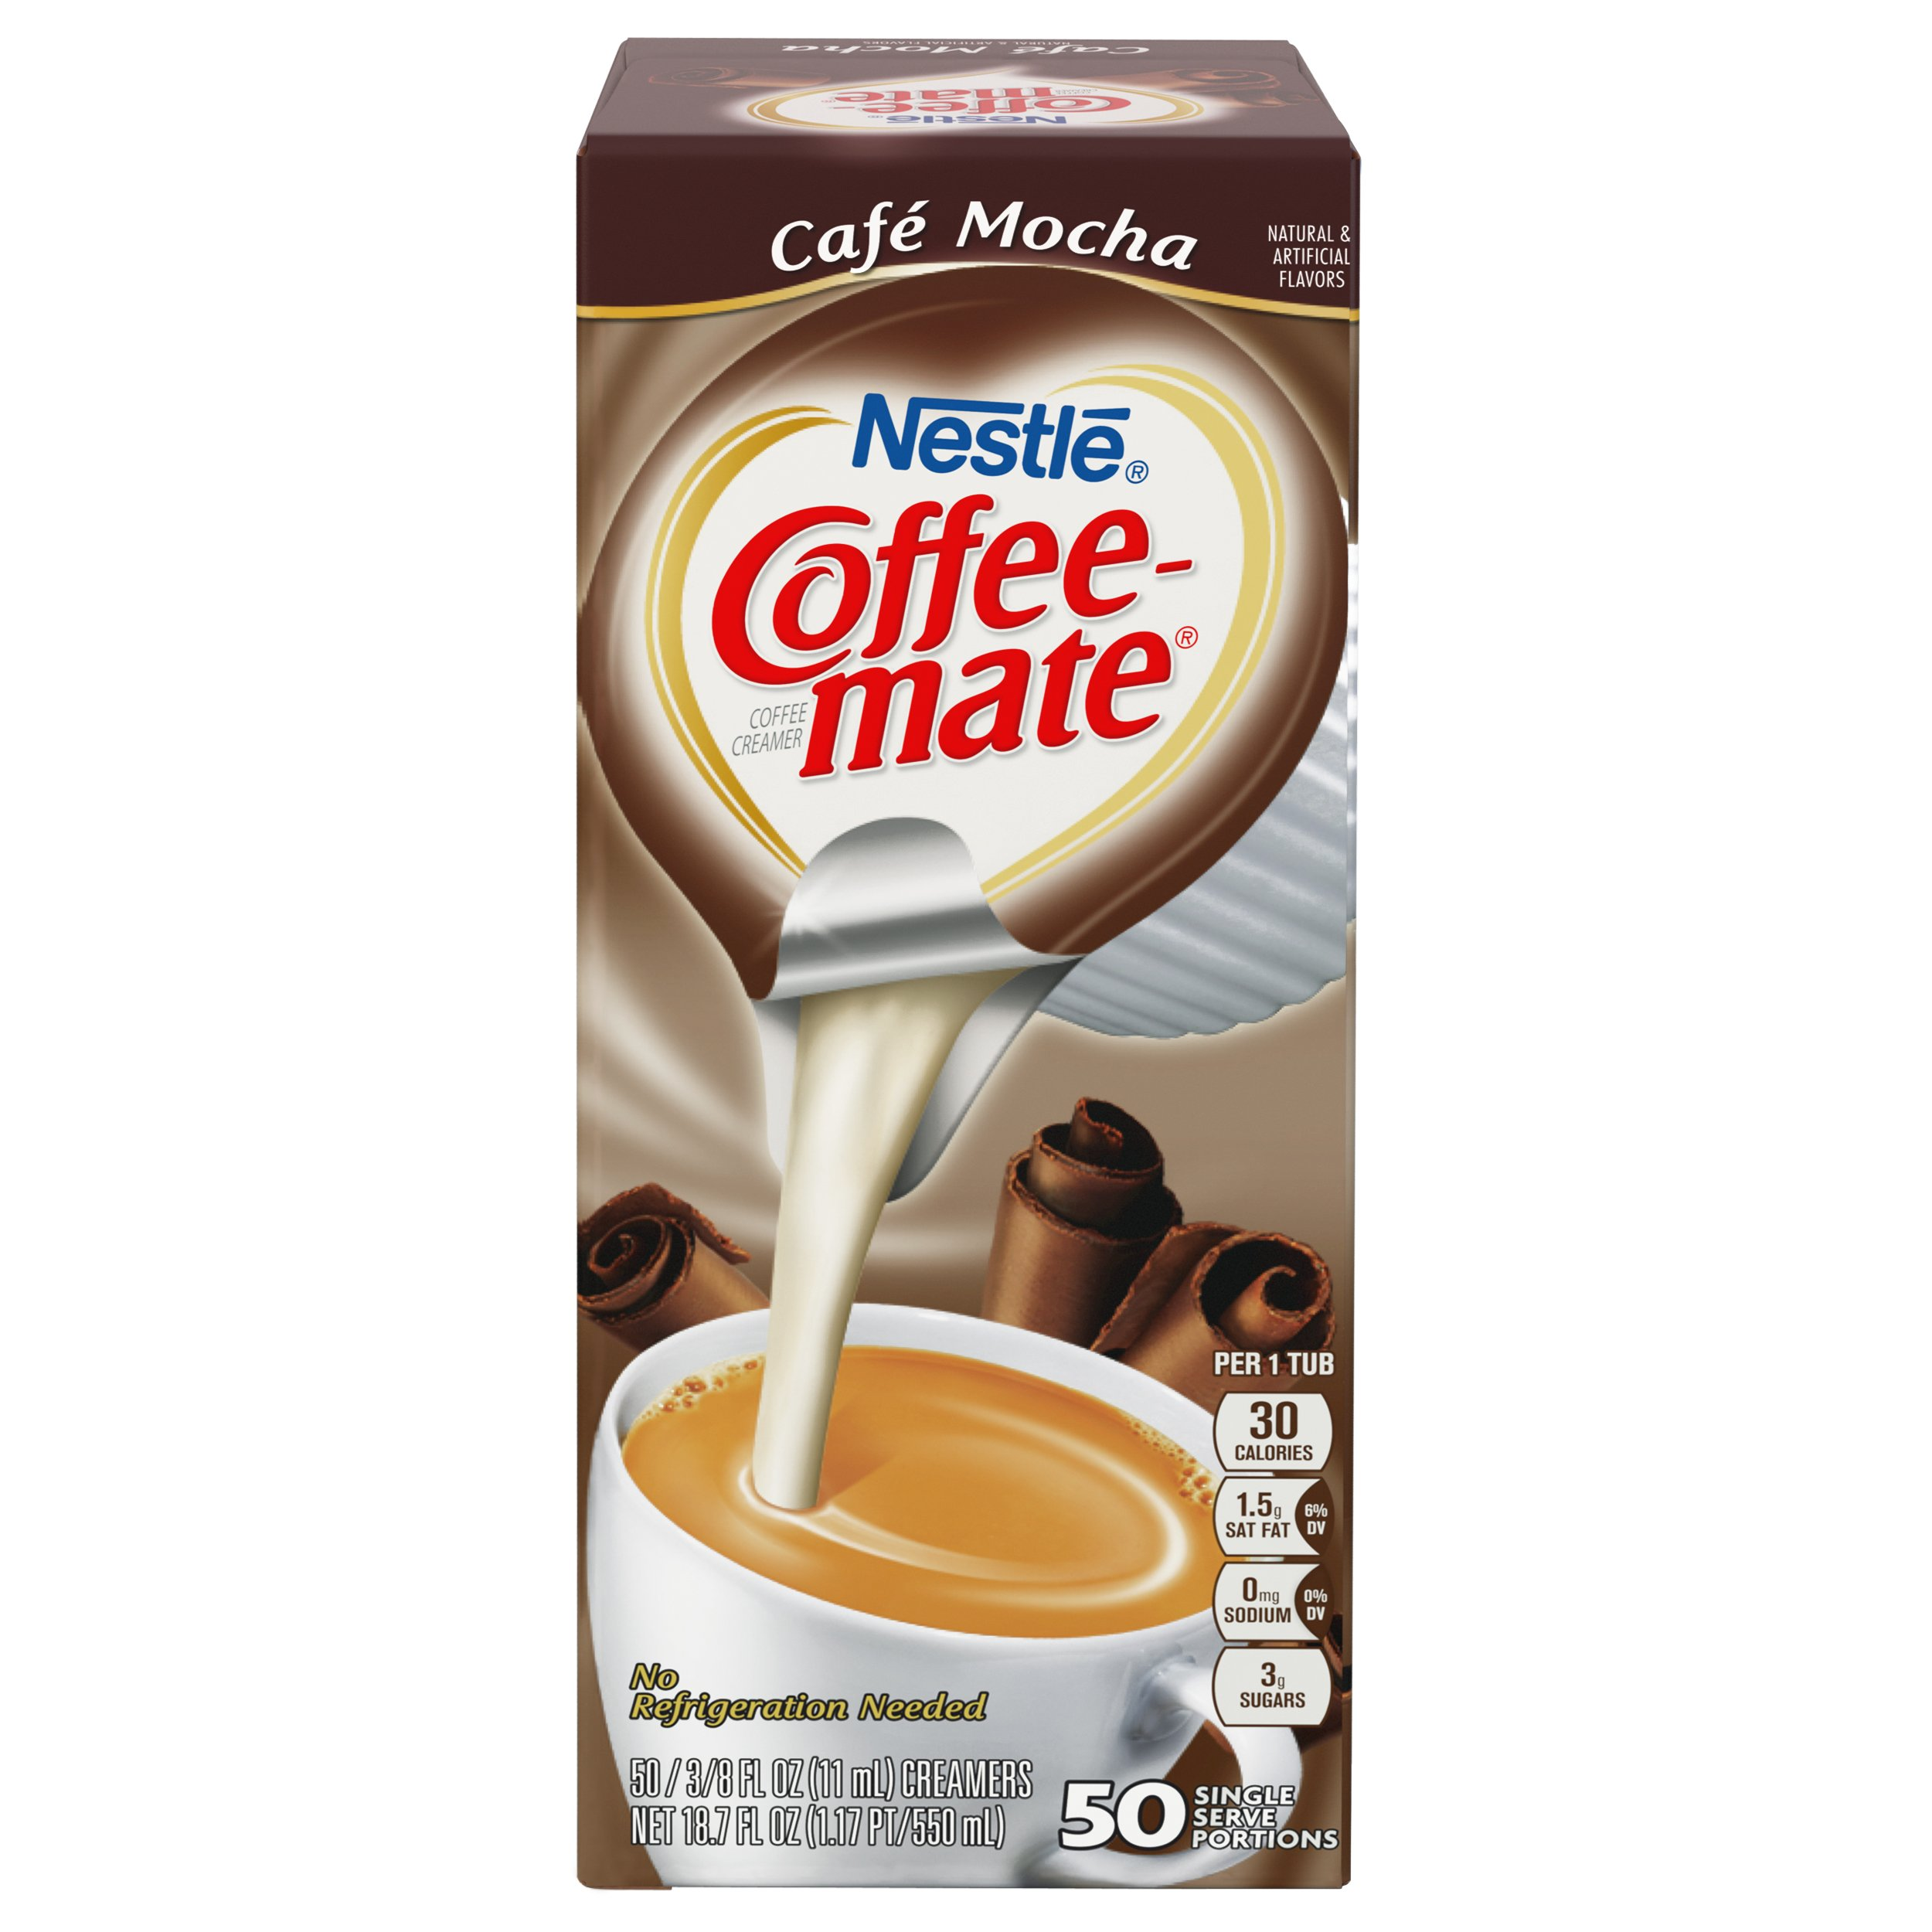 NESTLE COFFEE-MATE Coffee Creamer, Cafe Mocha, liquid creamer singles, 50 Count (Pack of 4) by Nestle Coffee Mate (Image #4)